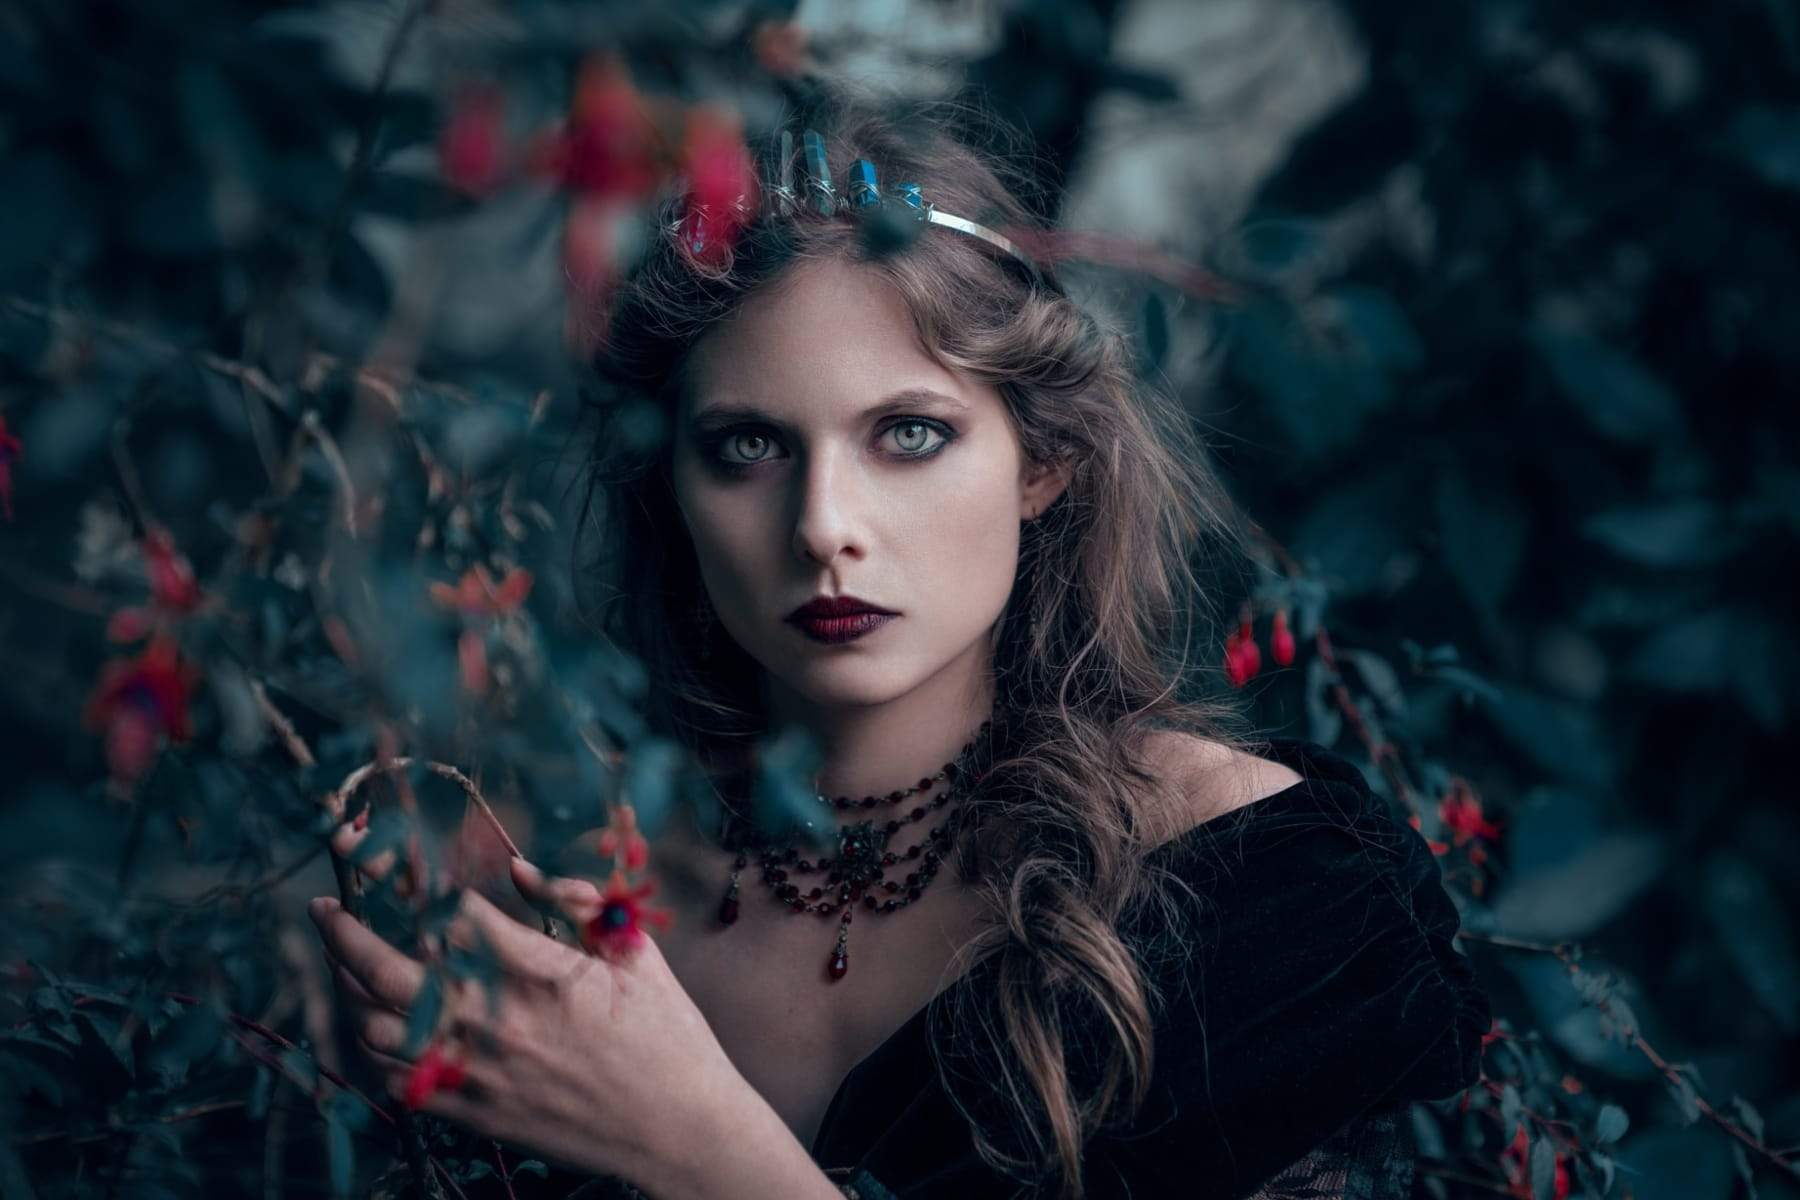 Wicca, And Not A Form Of Association With The Devil